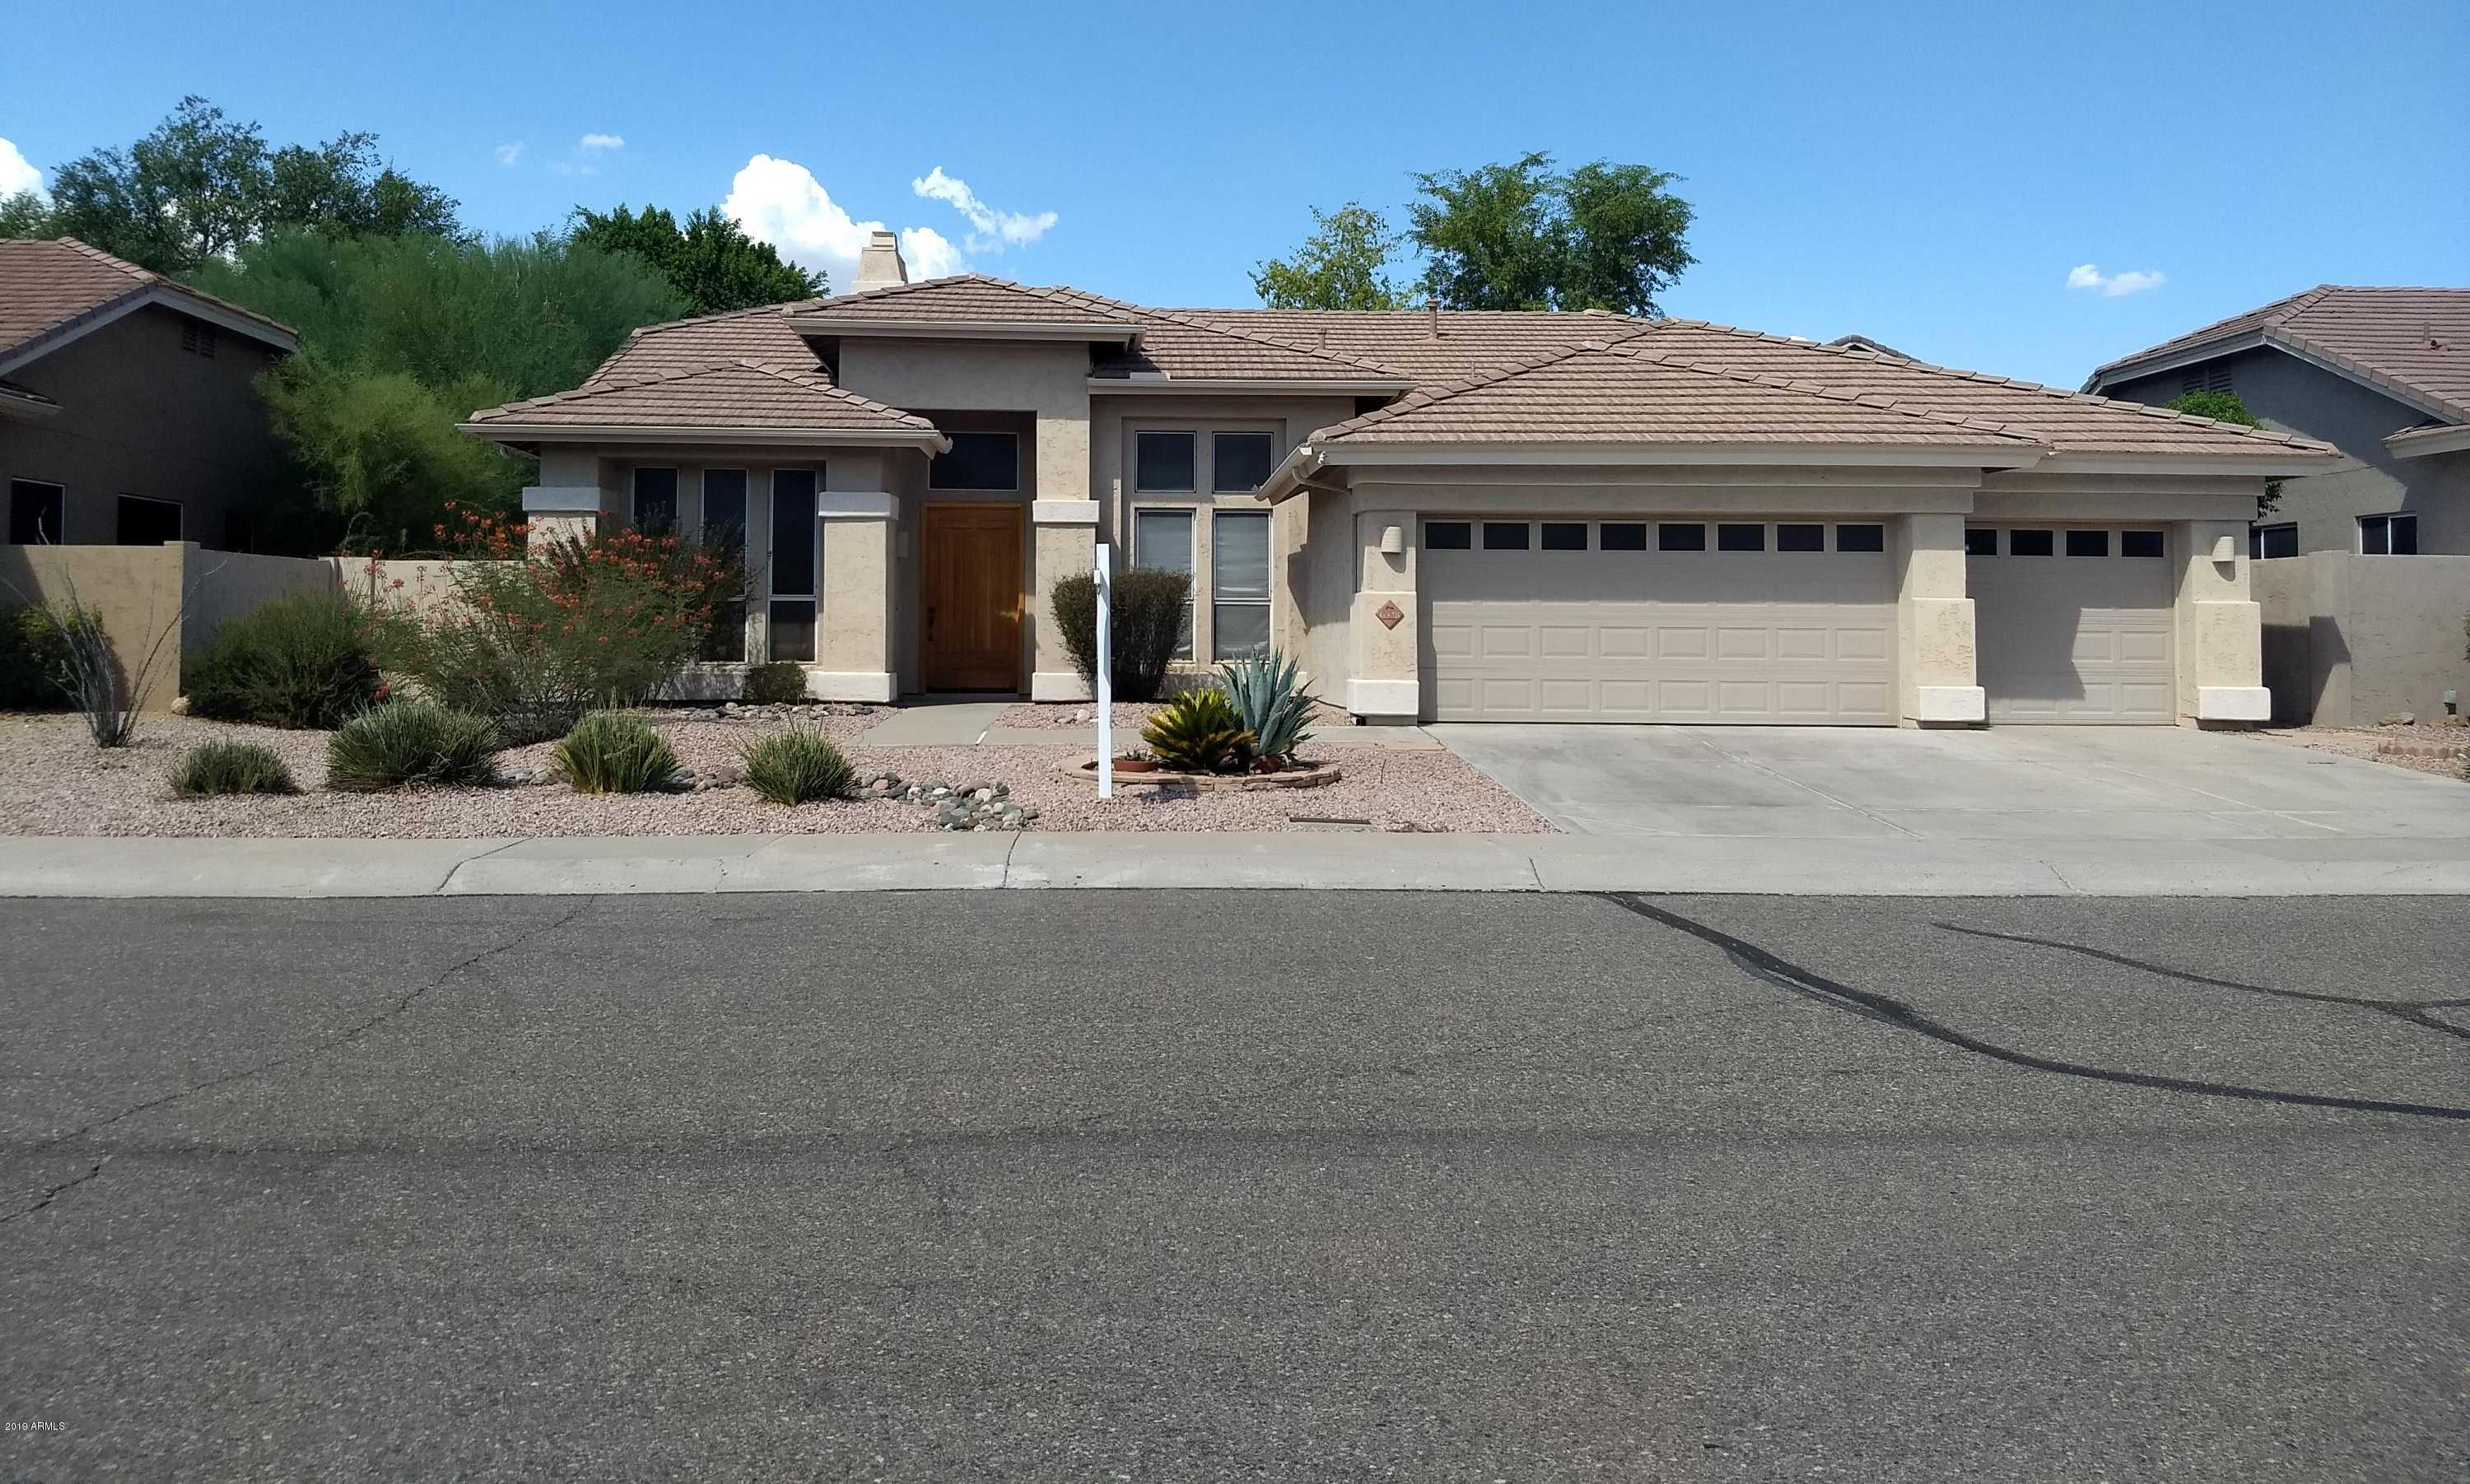 $435,500 - 4Br/2Ba - Home for Sale in Top Of The Ranch 3, Glendale